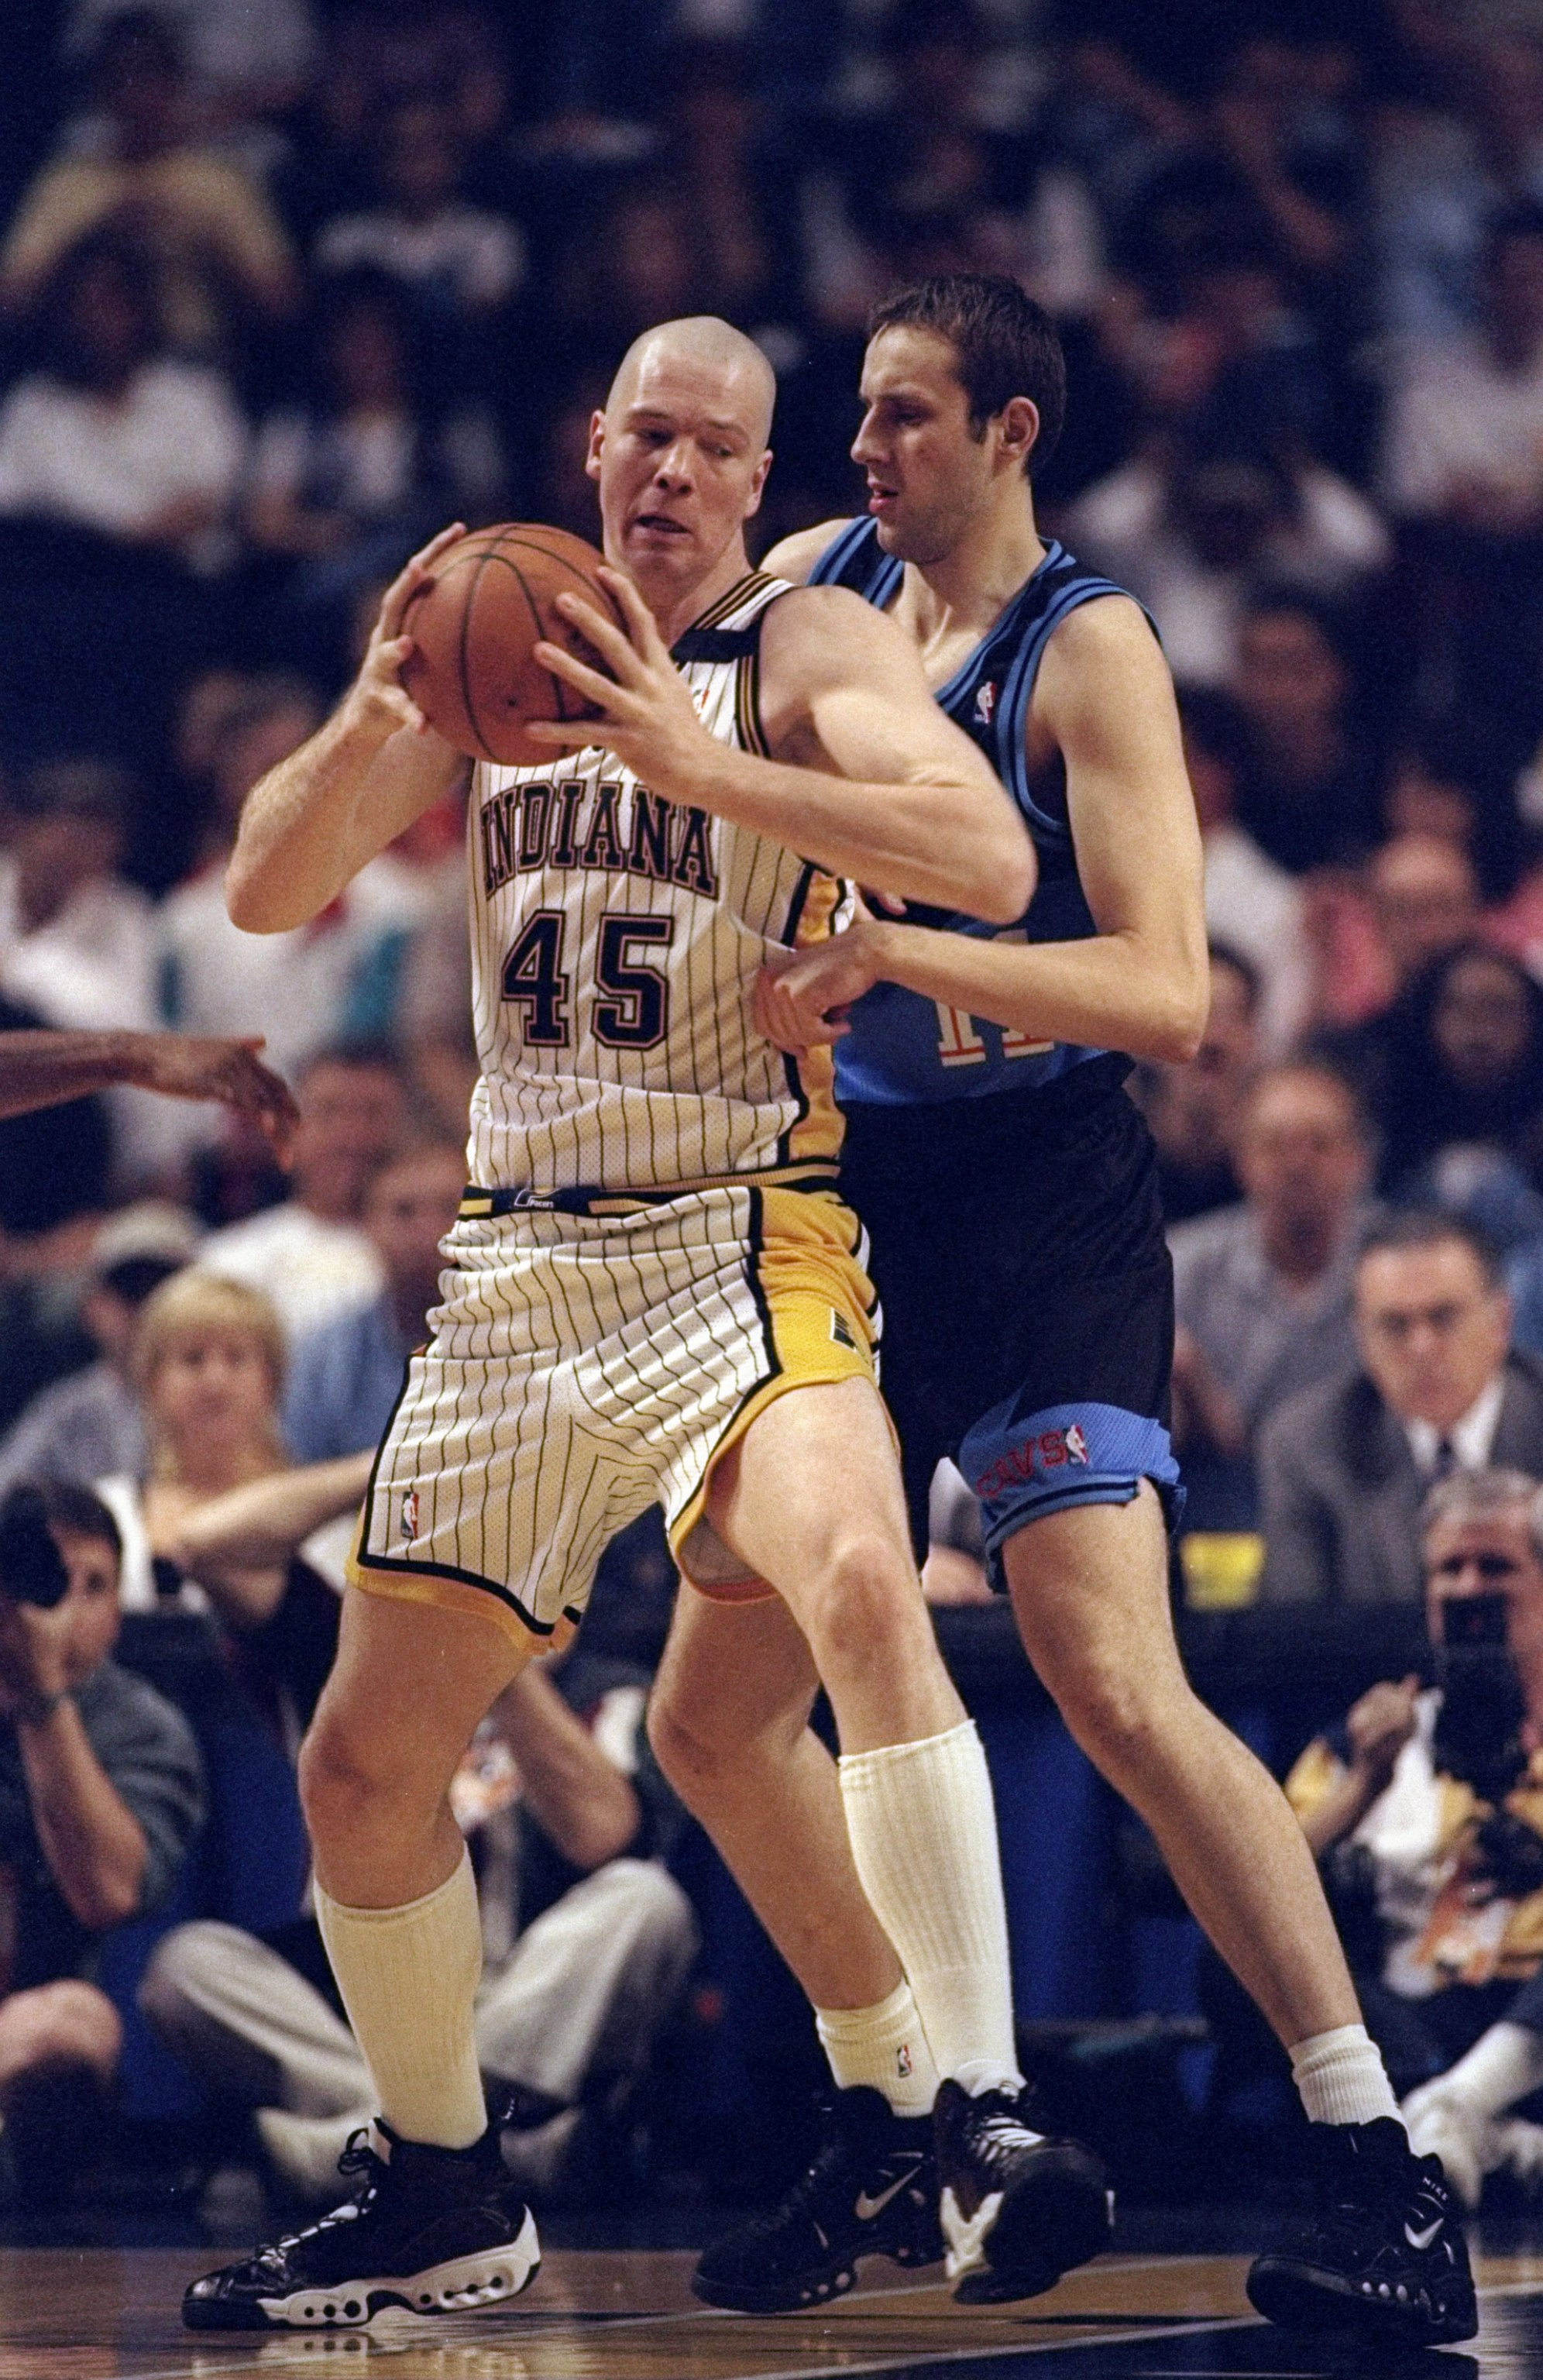 25 Apr 1998: Rik Smits #4 of the Cleveland Cavaliers in action against during a game against the Indiana Pacers at the Market Square Arena in Indianapolis, Indiana. The Pacers defeated the Cavaliers 92-86.